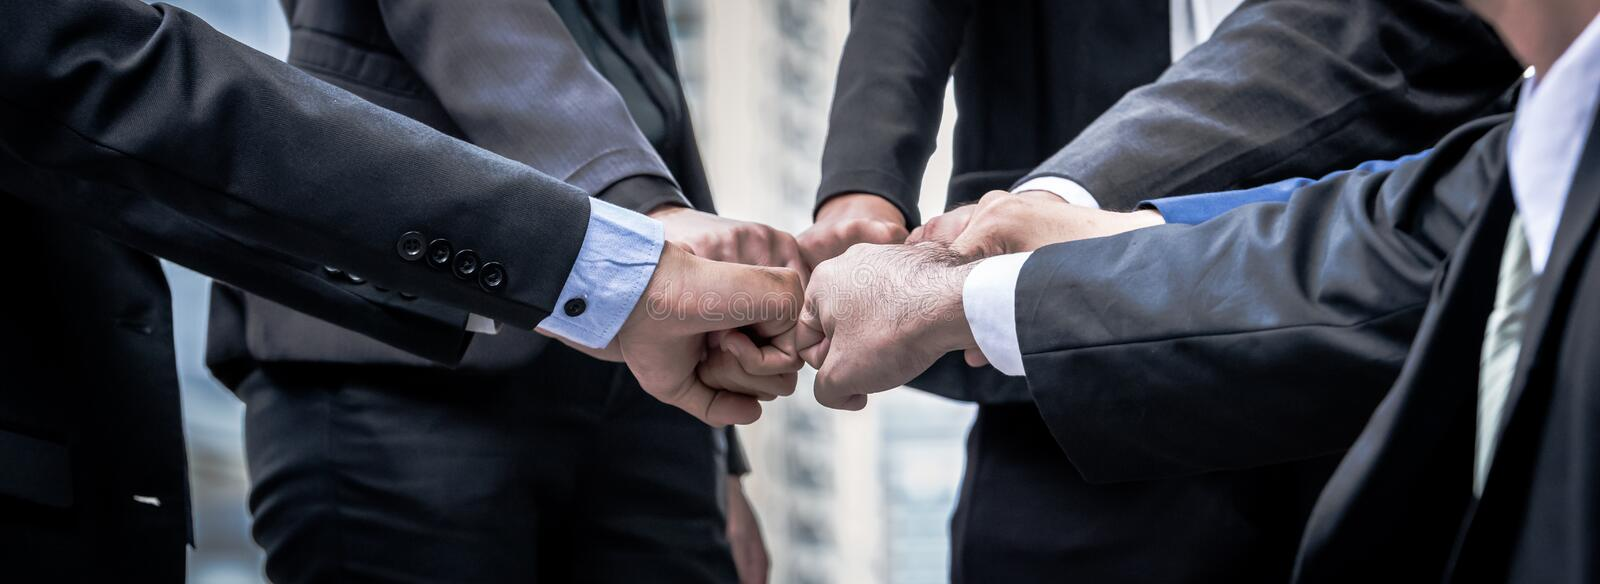 Business teamwork trust in partner. Teamwork Concept. royalty free stock photography